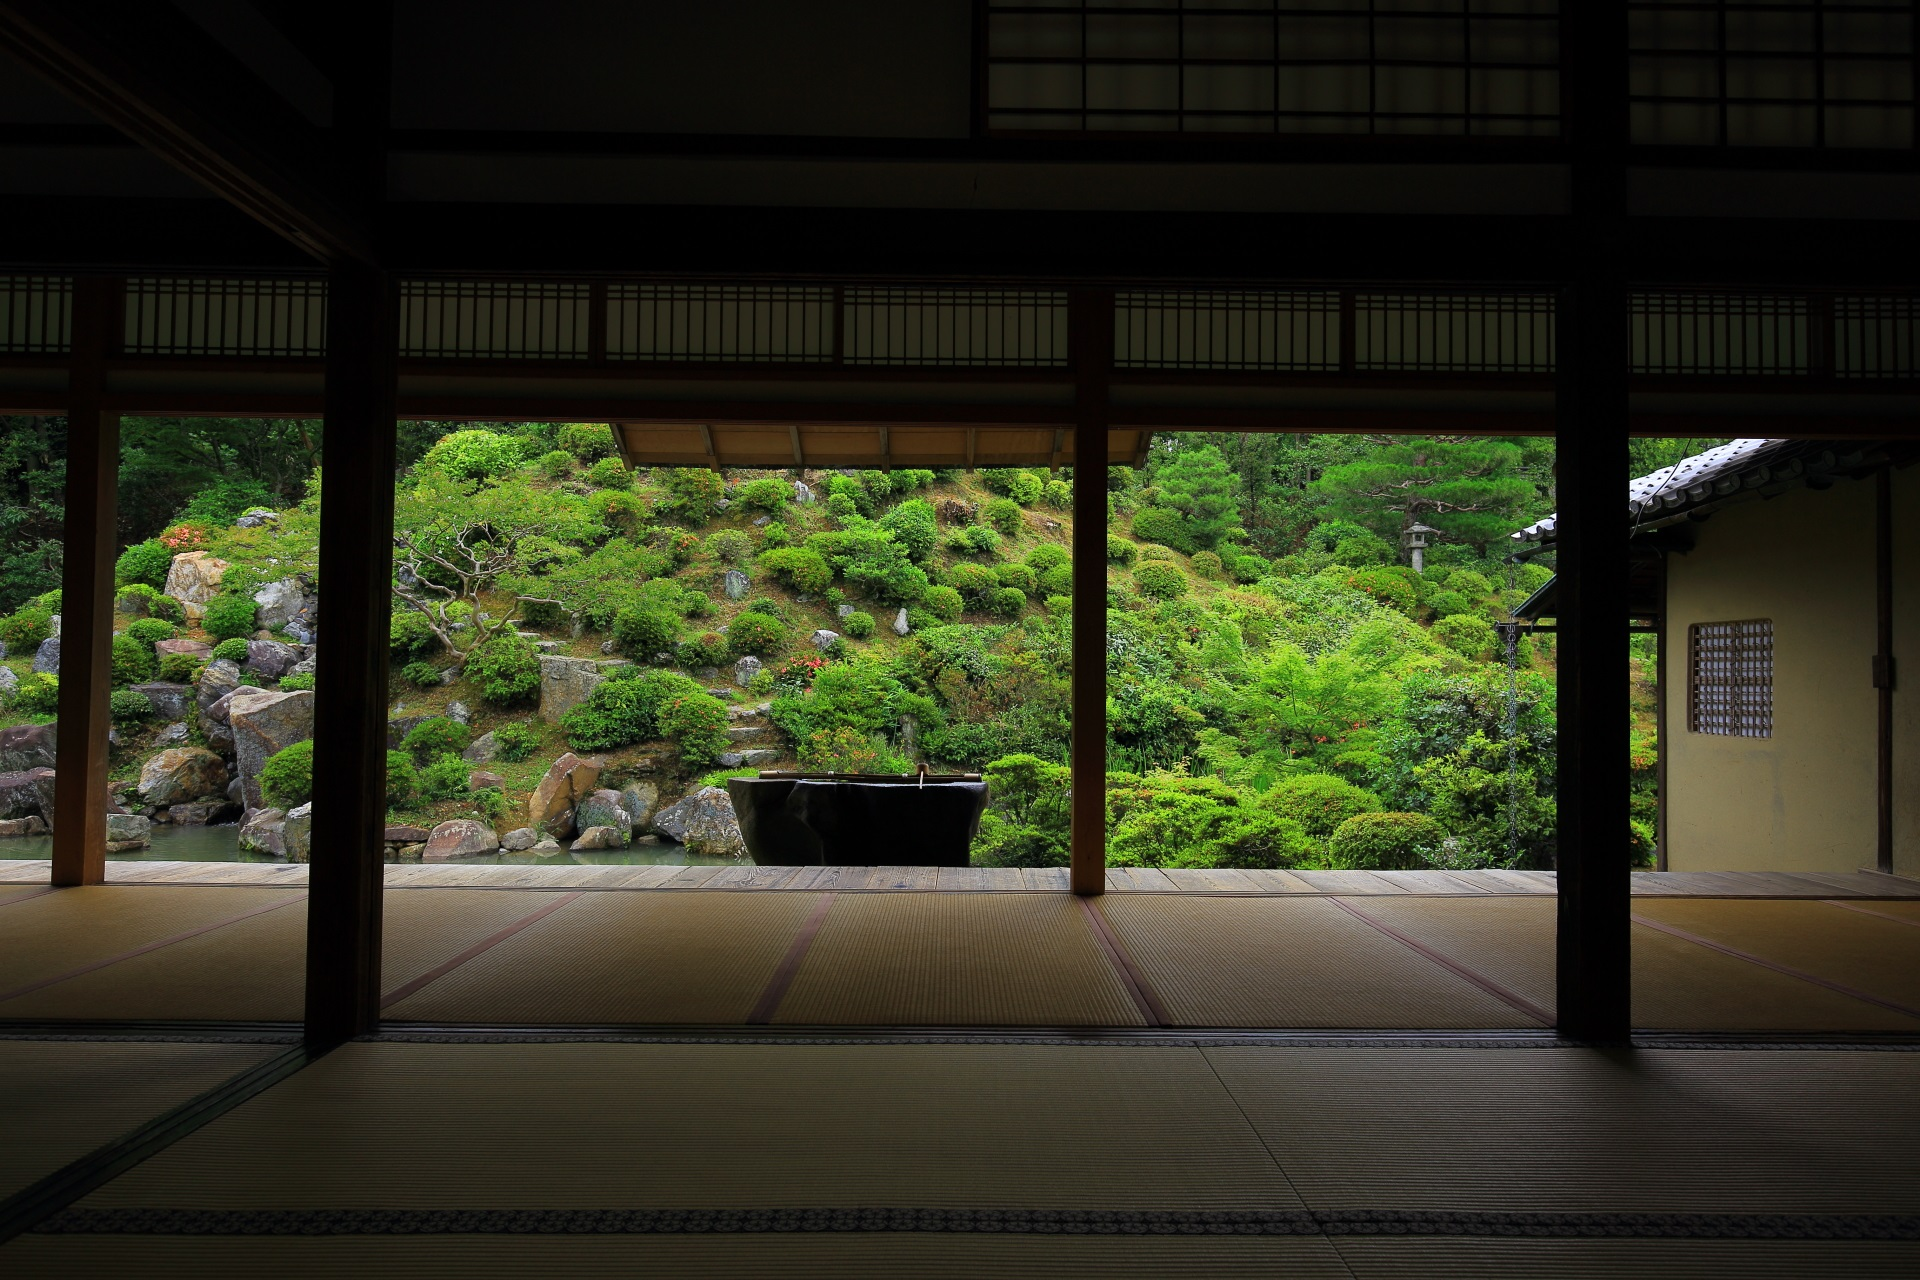 Rikyu favorite garden of Chishakuin-Temple in Kyoto,Japan